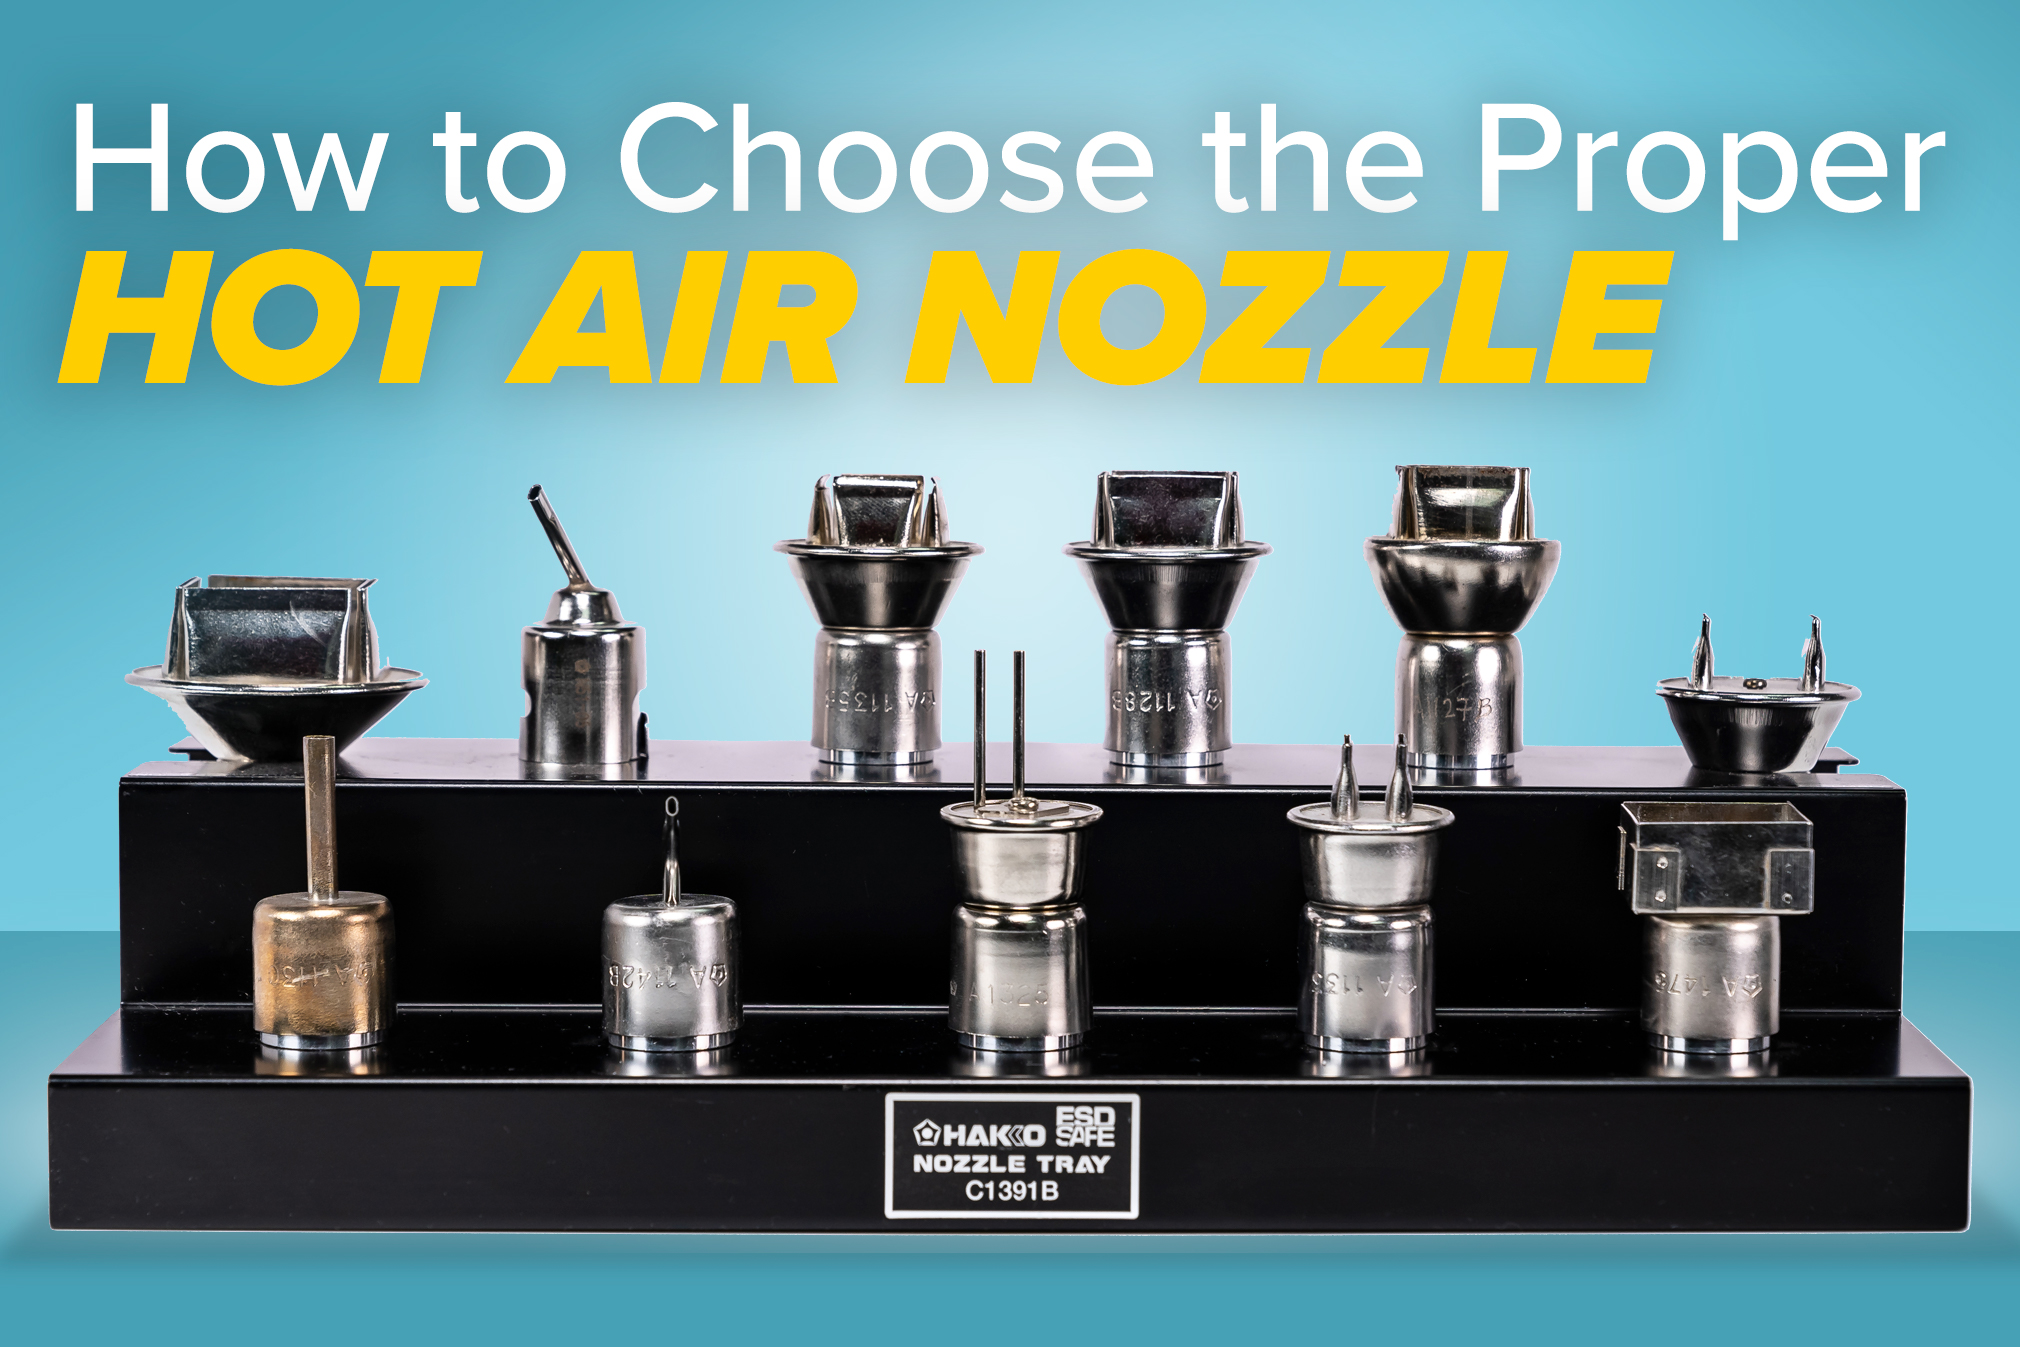 How to Choose the Proper Hot Air Nozzle